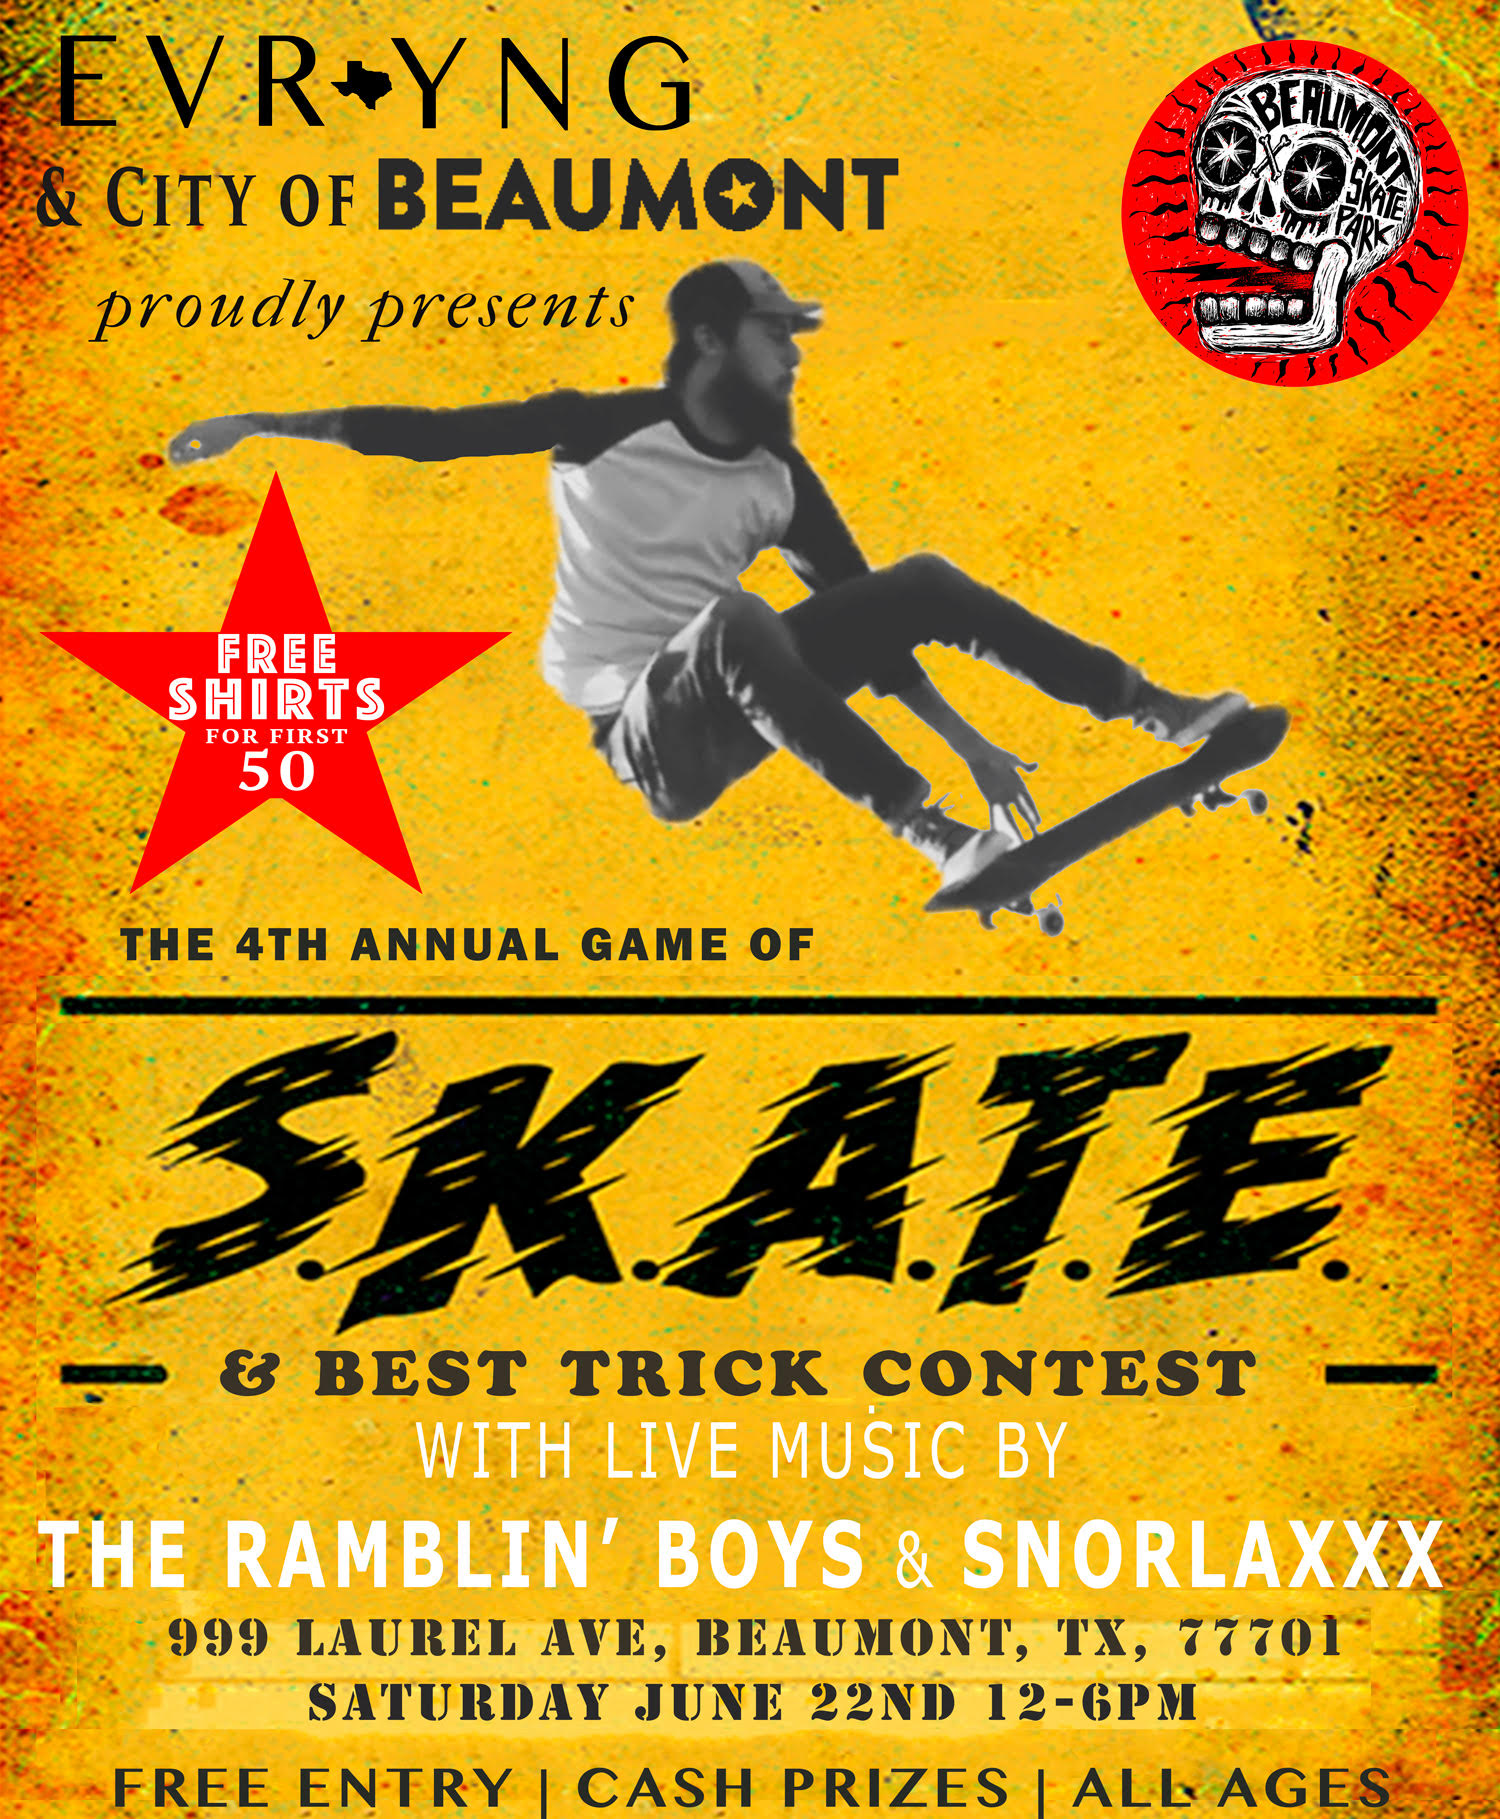 4th Annual Game of Skate w/ Live music